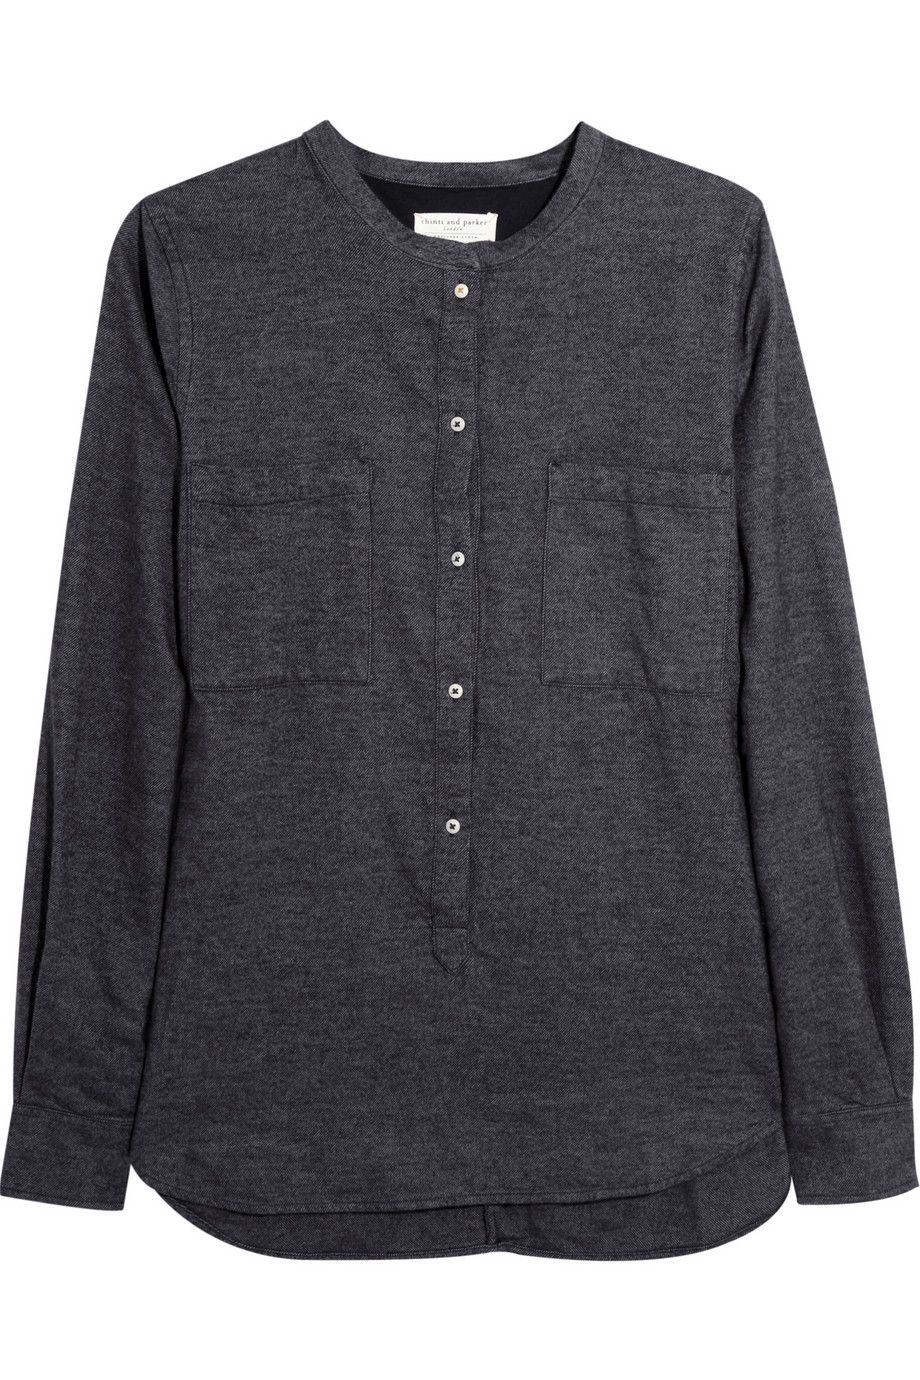 Flannel shirt black and grey  Cottonflannel shirt by Chinti and Parker  B L A C K  Pinterest